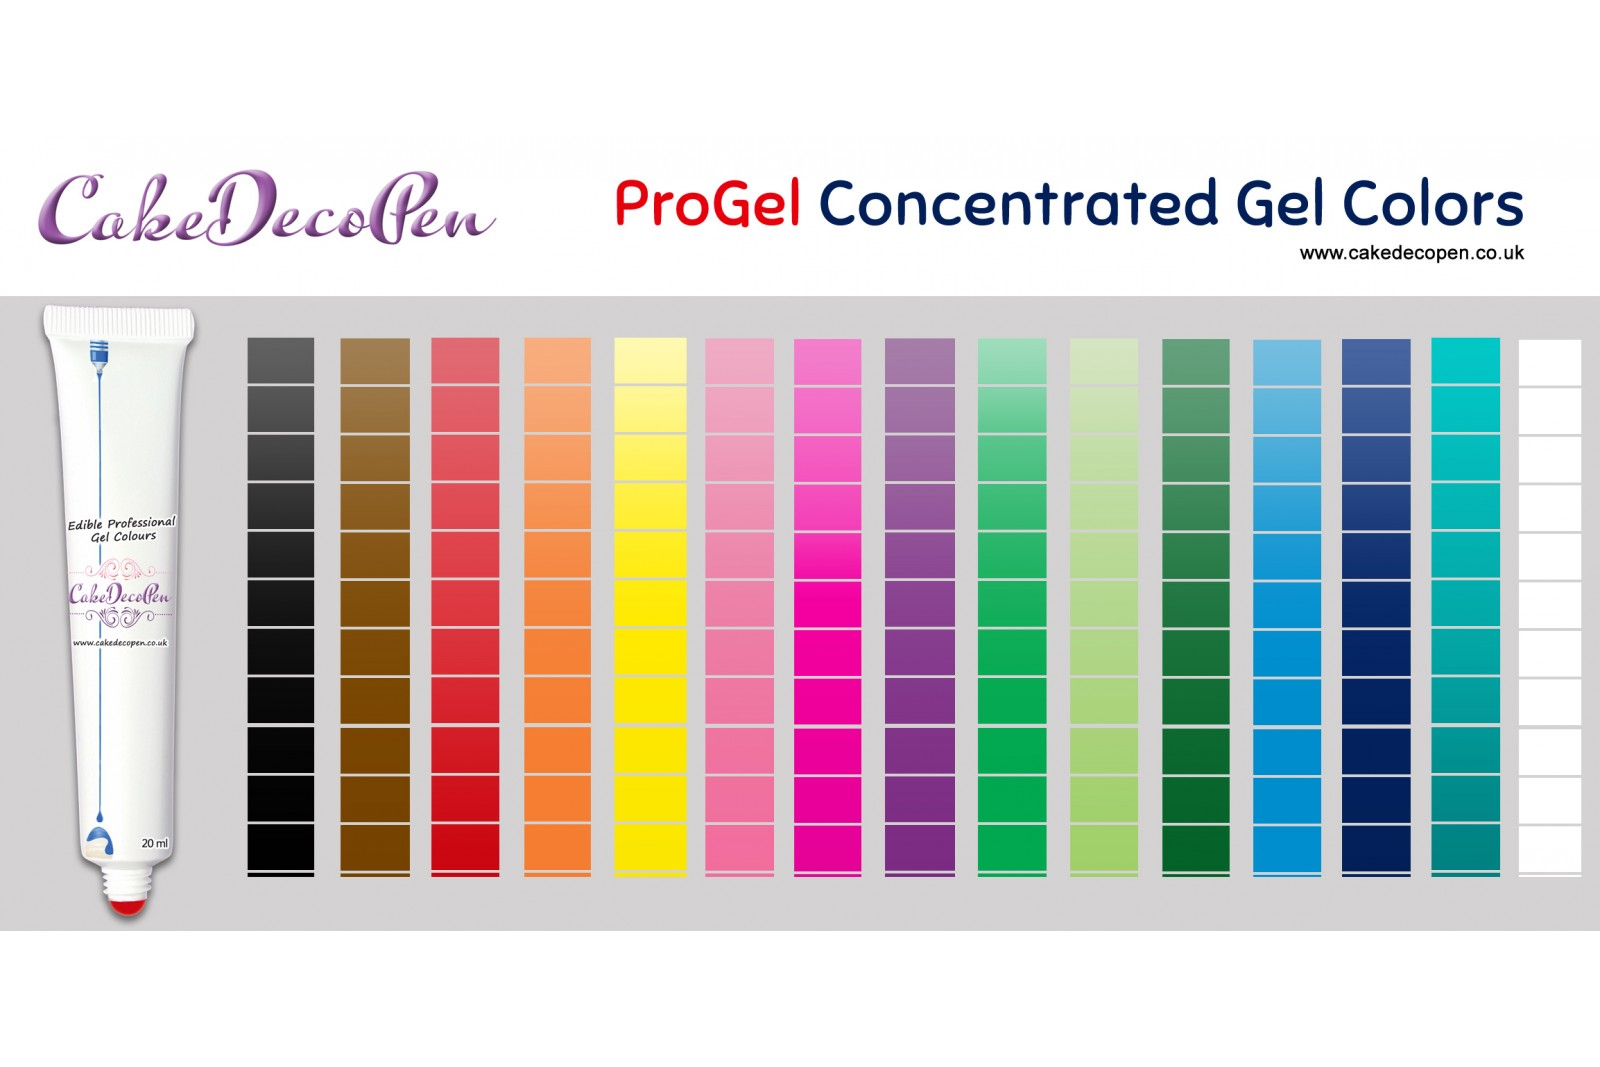 Cocoa Brown | Gel Food Colors | Concentrated ProGel | Cake ...